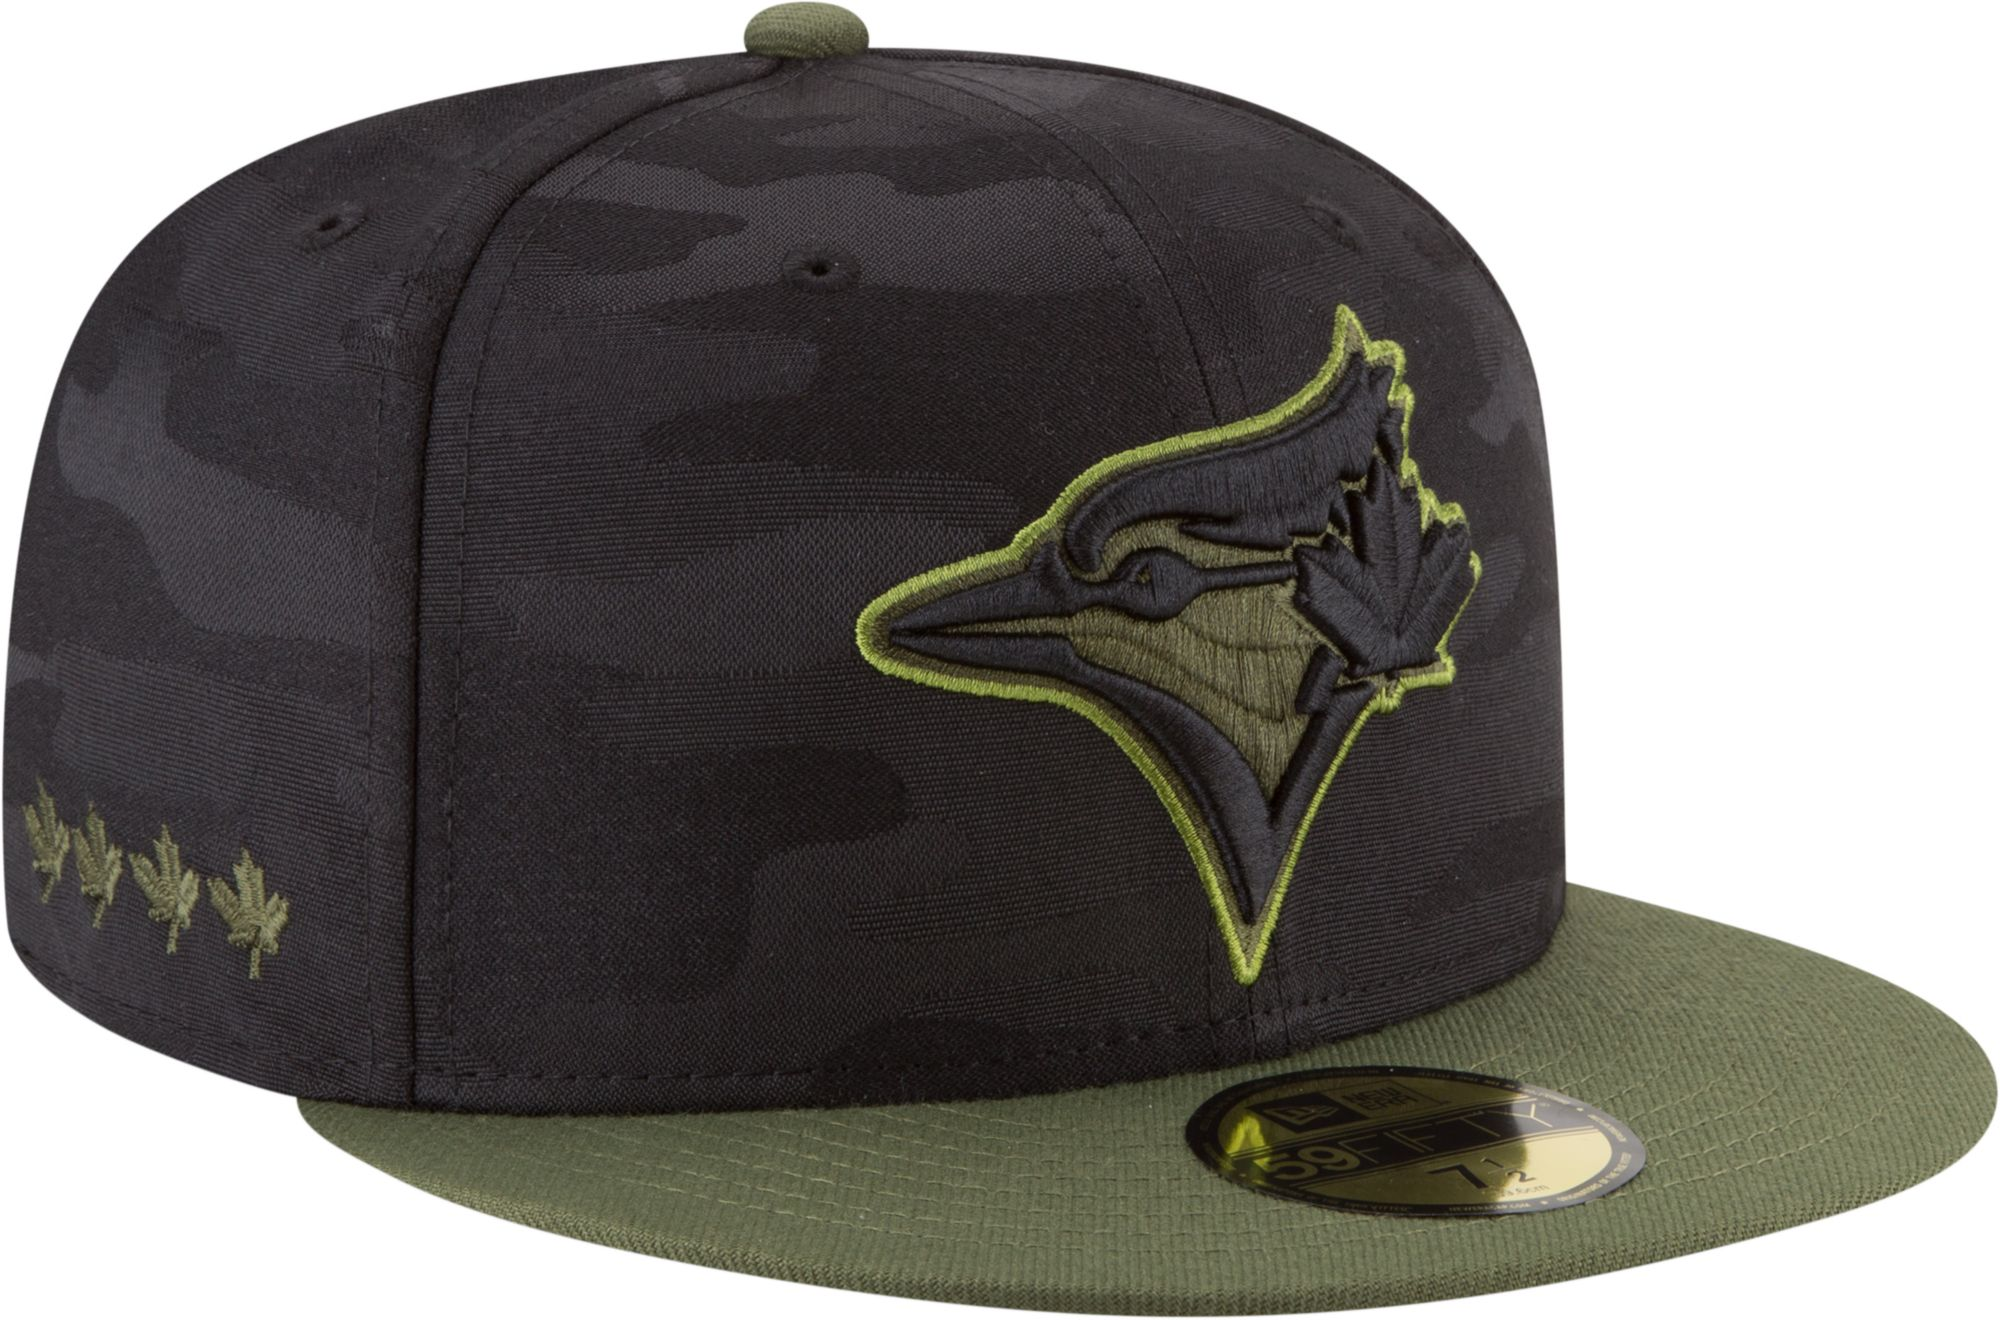 check out 9e6d1 a0850 ... clearance new era mens toronto blue jays 59fifty 2018 memorial day  fitted hat f889a bd2ee ...